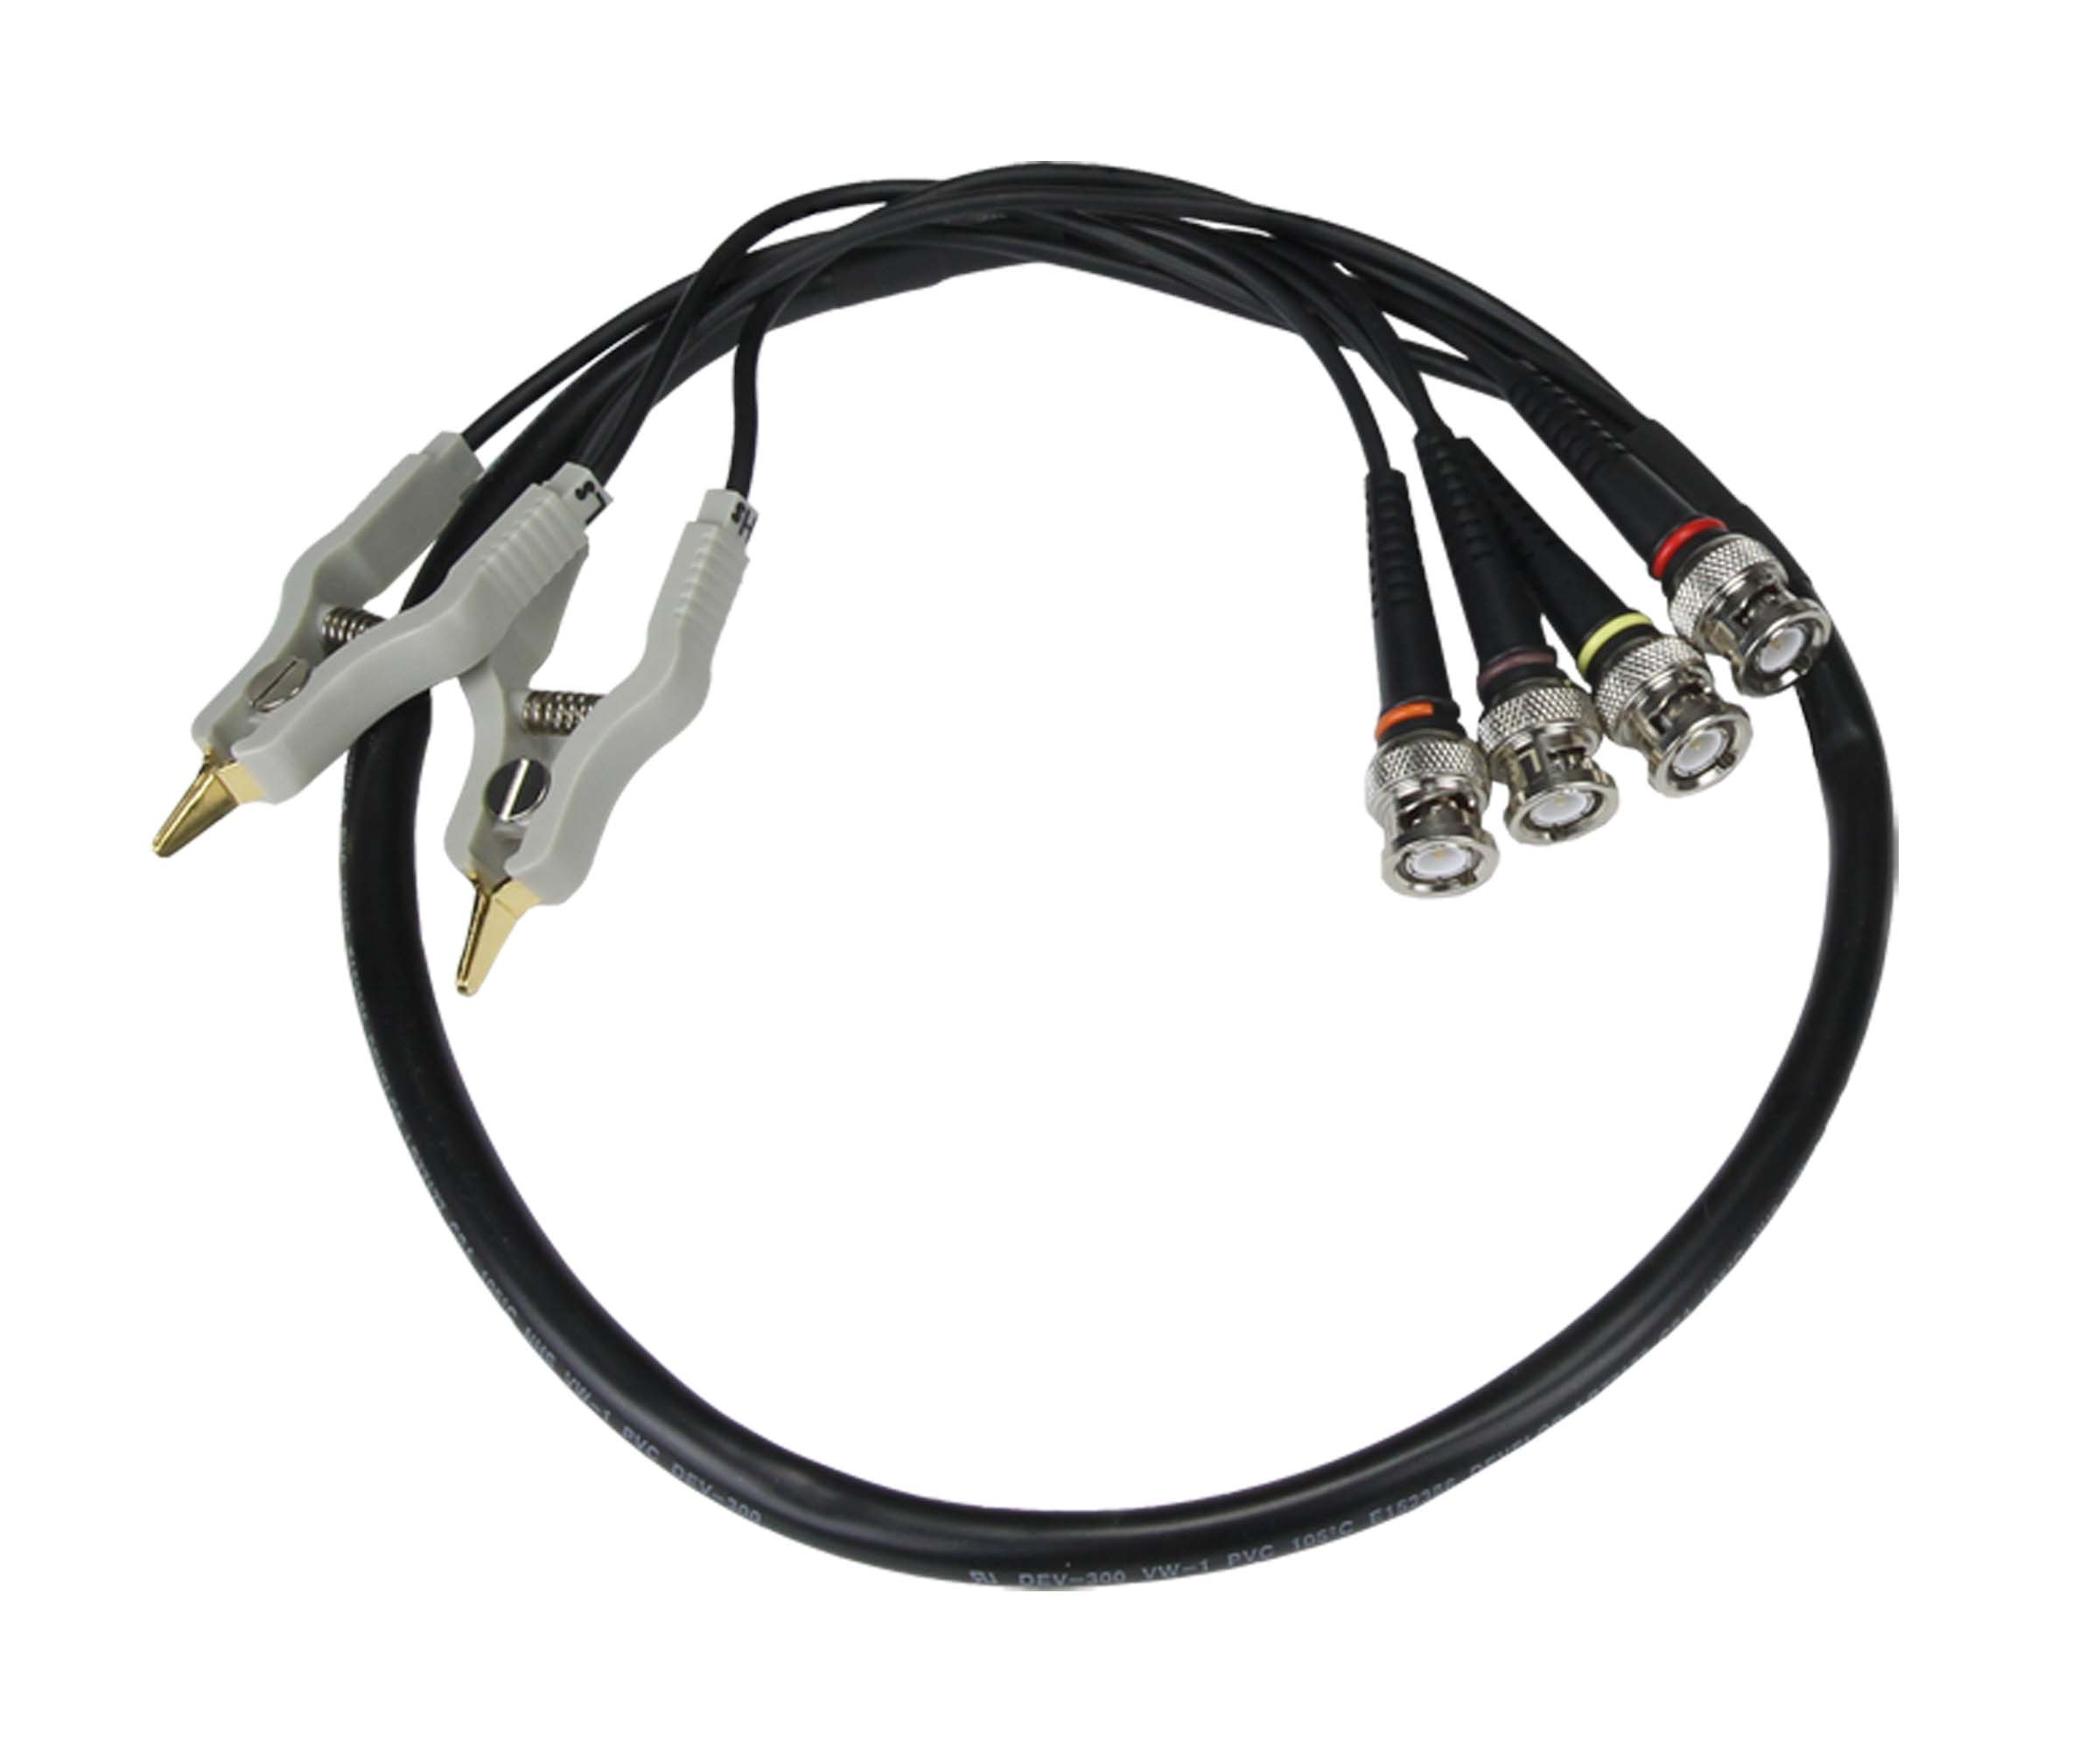 Global Specialties GSA-3746 BNC to Clip Test Lead for LCR-600 Photo